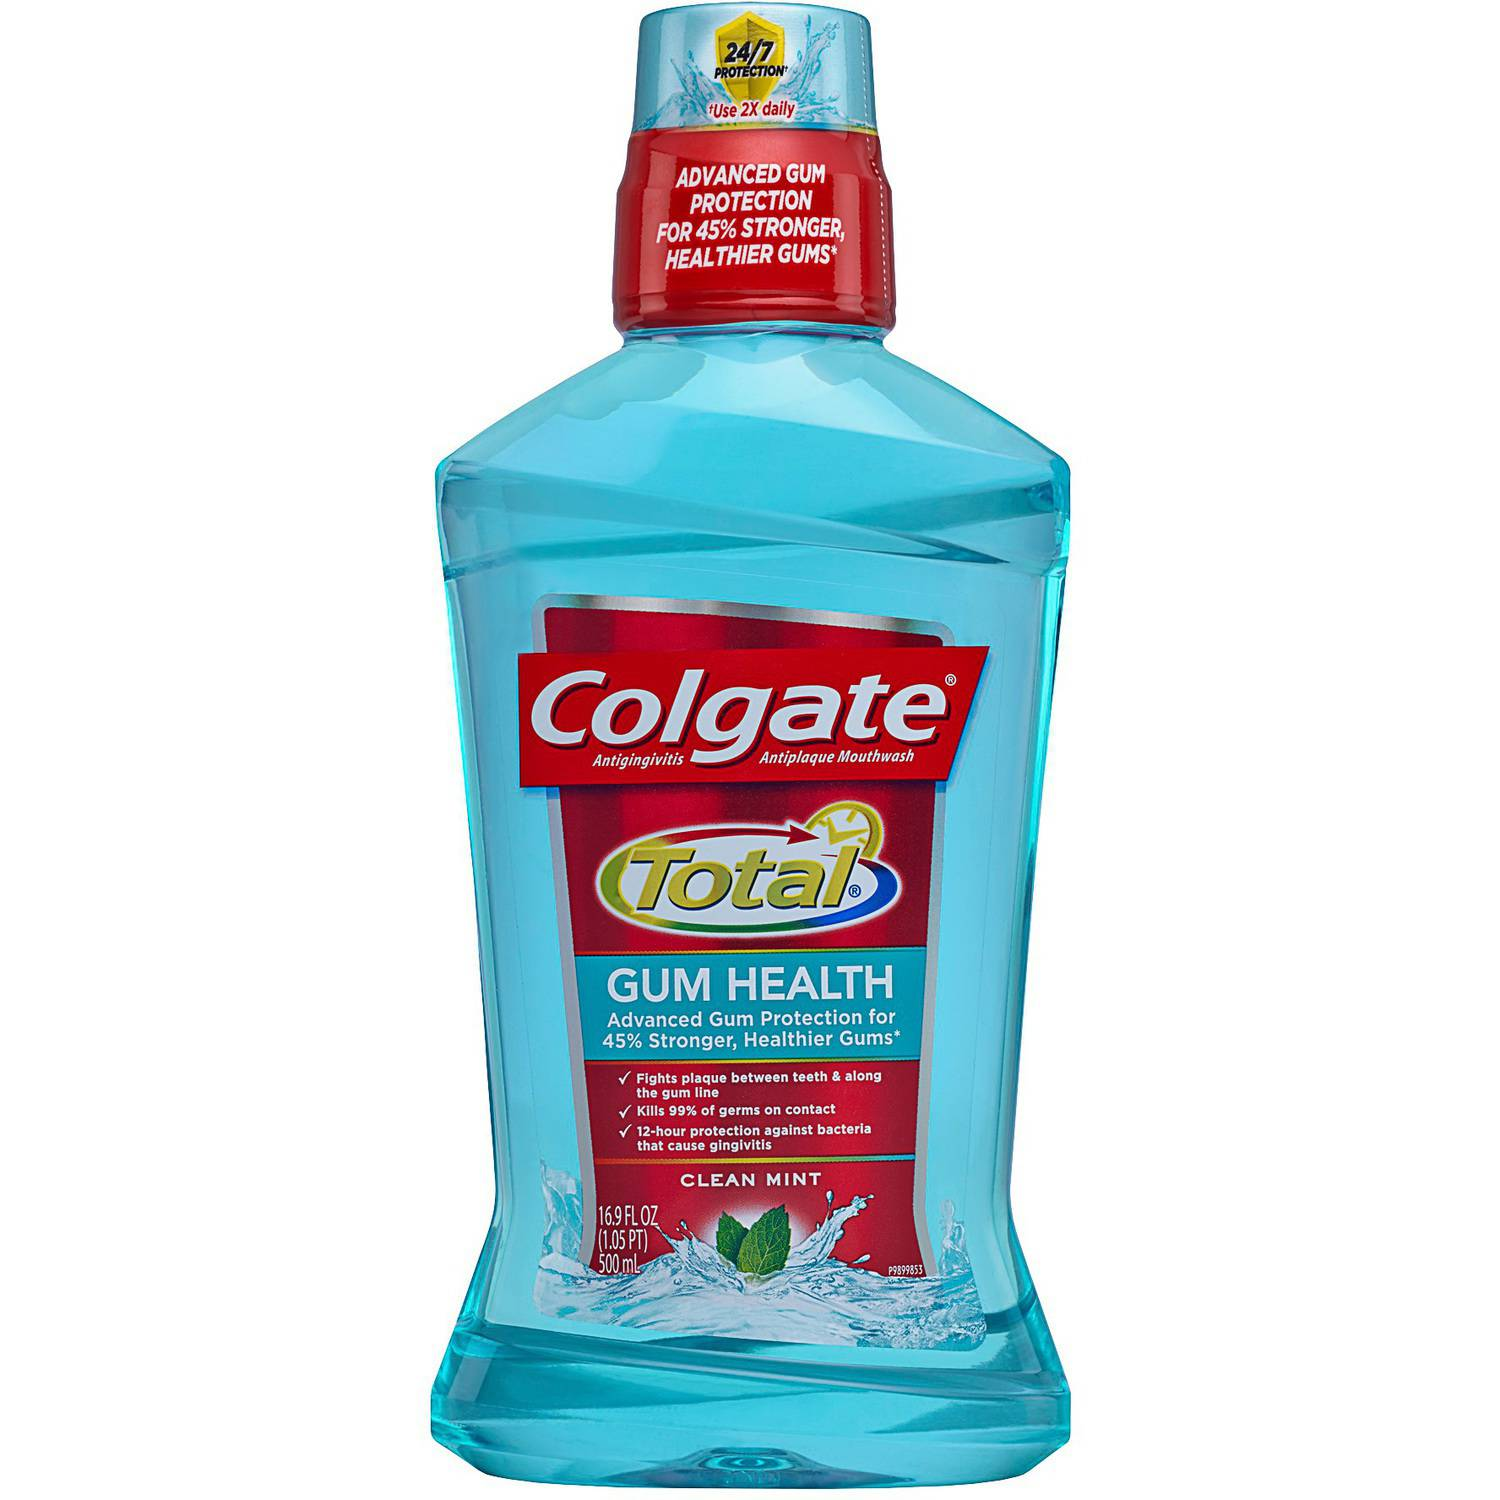 Colgate Total Gum Health Clean Mint Mouthwash, 16.9 fl oz